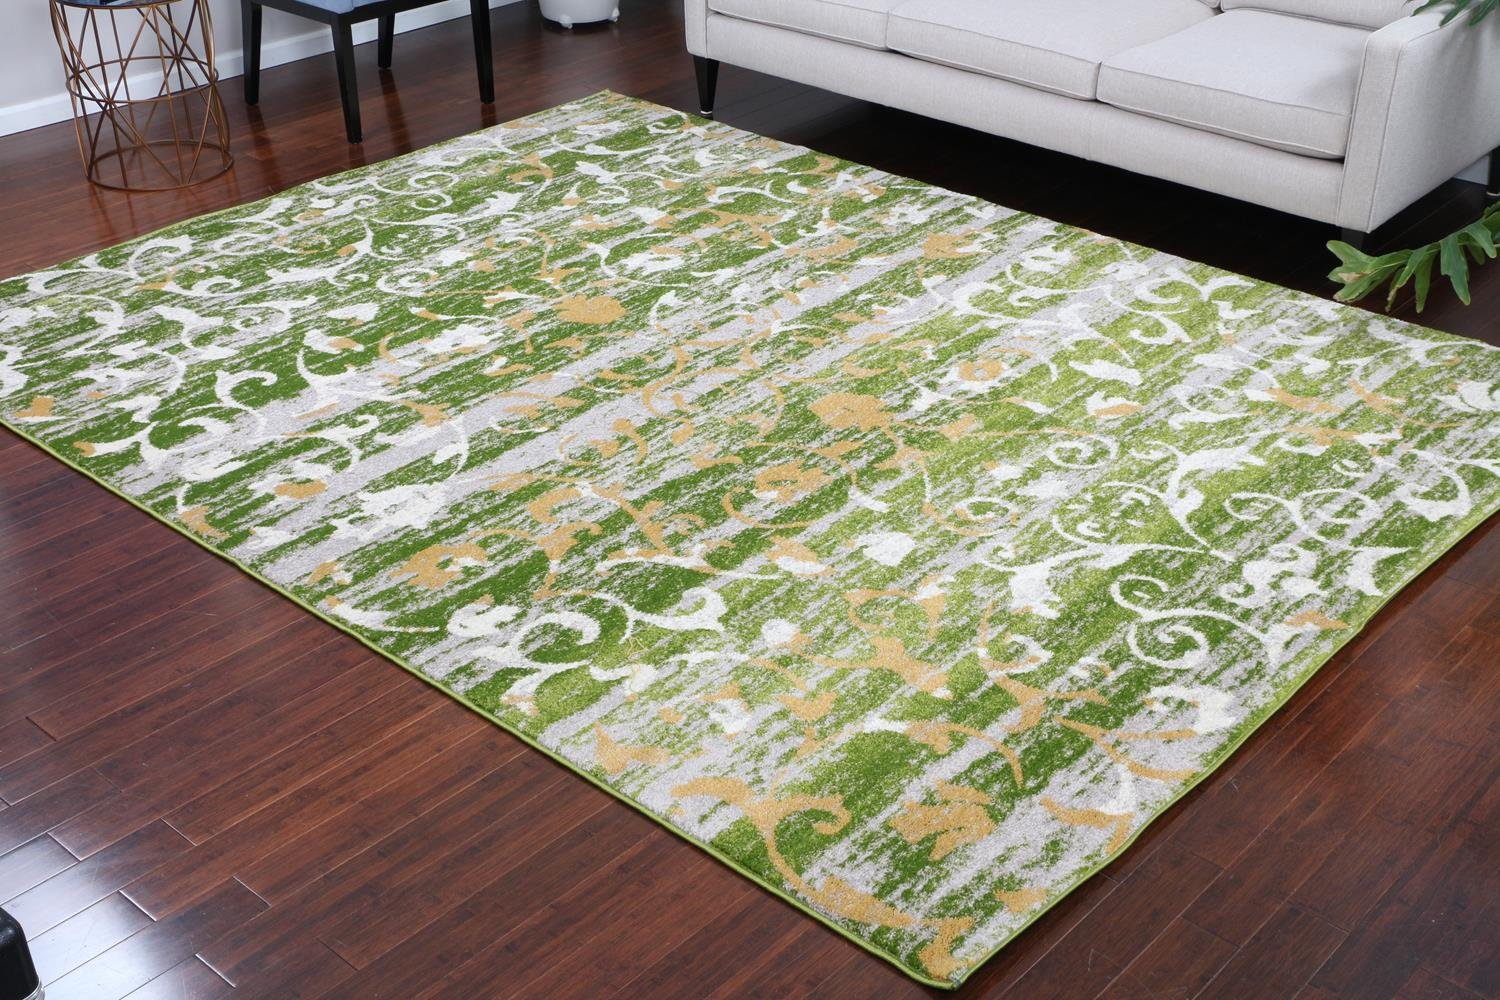 Paris Collection Oriental Carpet Area Rug Cream Green Gold 5052green 2x8 2'2x7'2